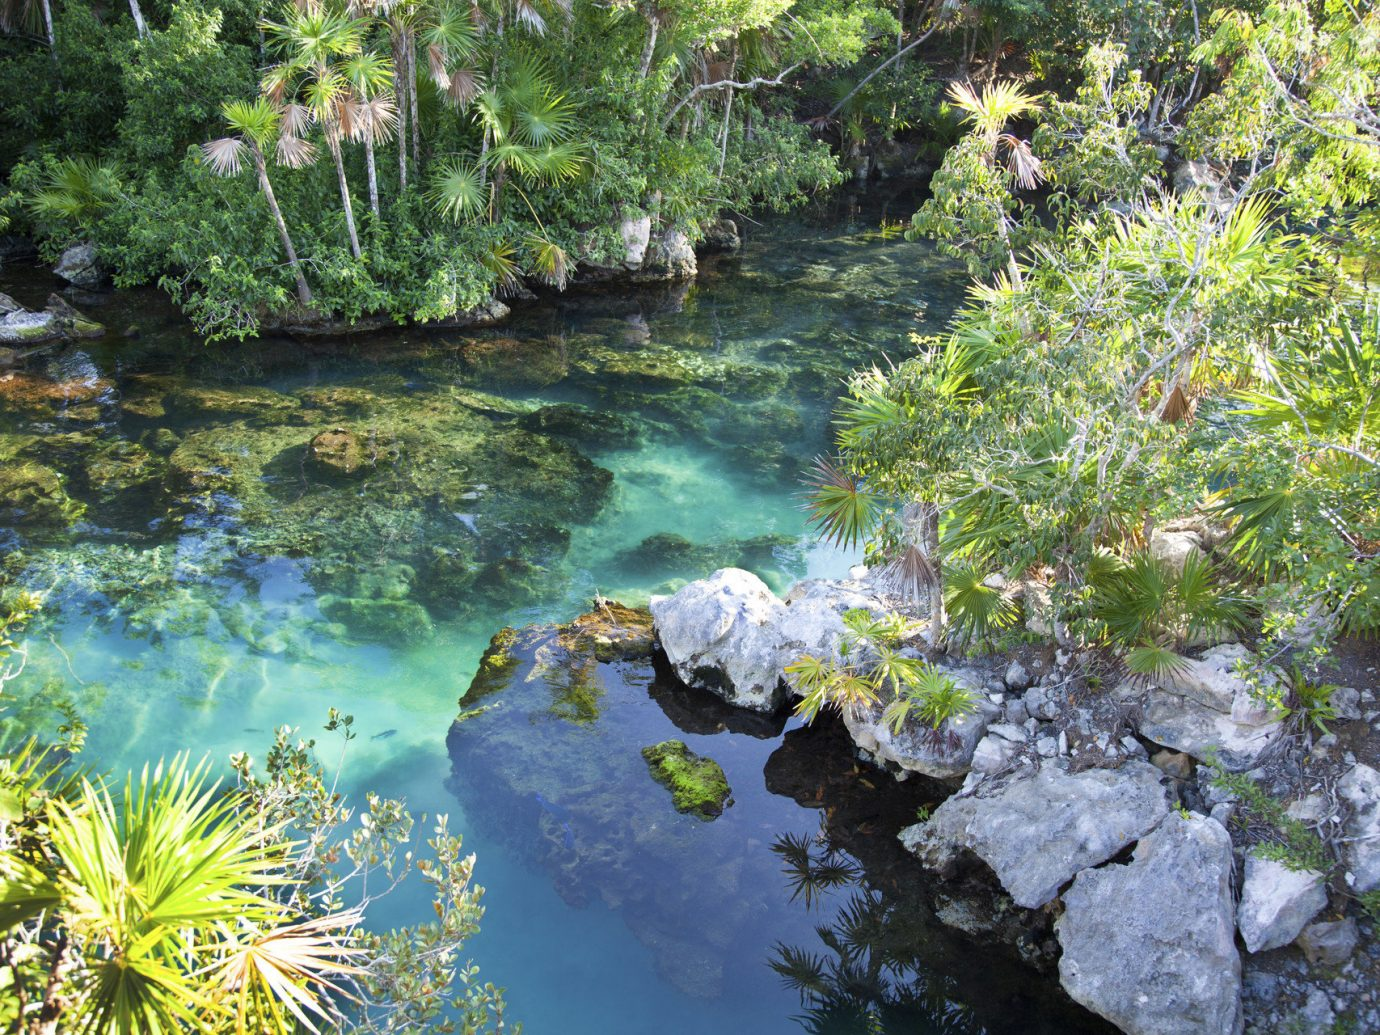 Trip Ideas tree outdoor vegetation Nature body of water watercourse ecosystem stream botany River pond flower water rapid Garden plant surrounded